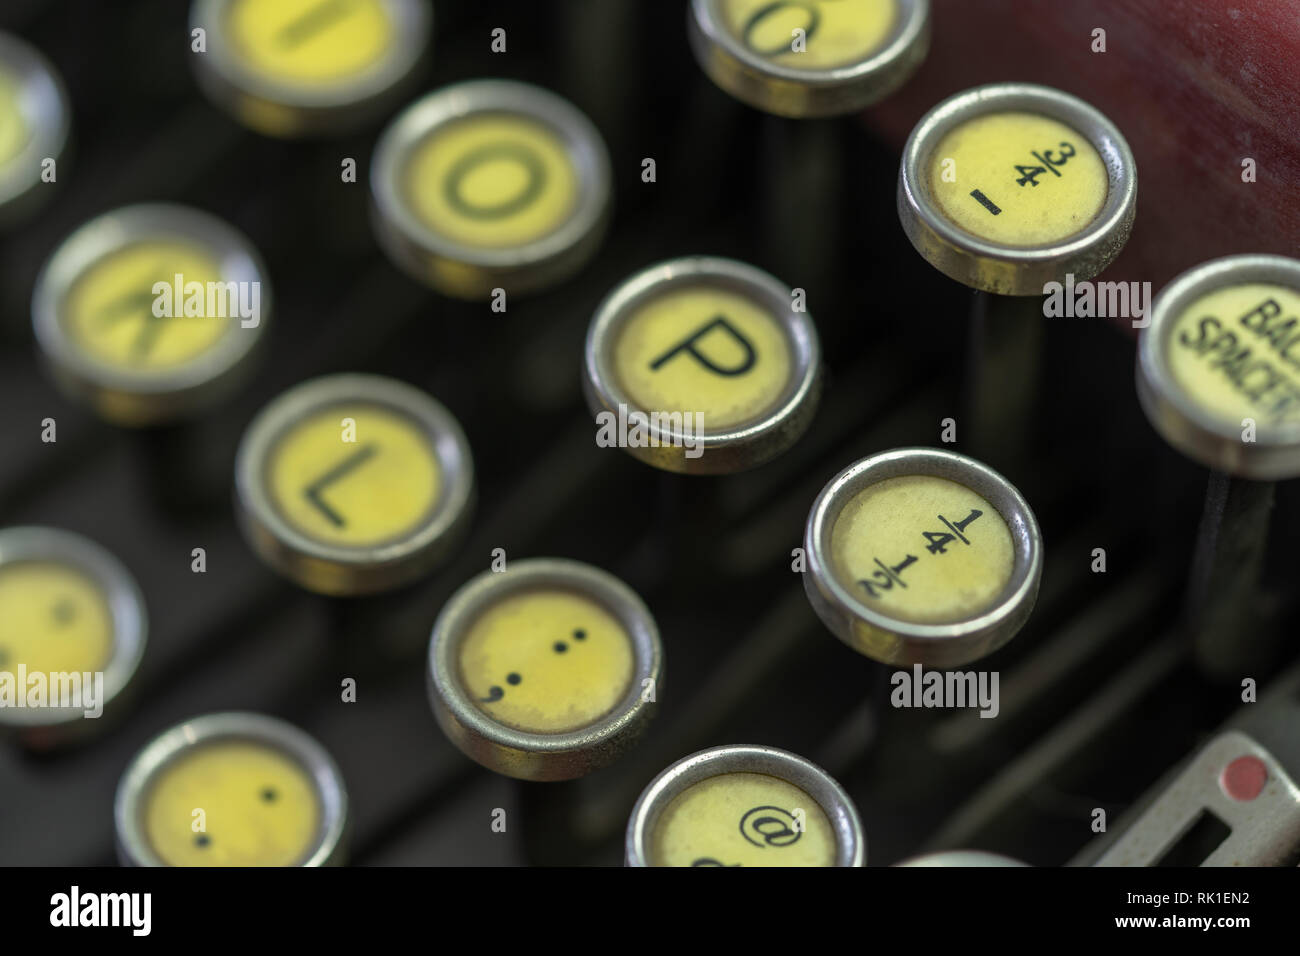 A closeup of the keys on an antique typewriter focusing on the fractional number 1/4. Stock Photo